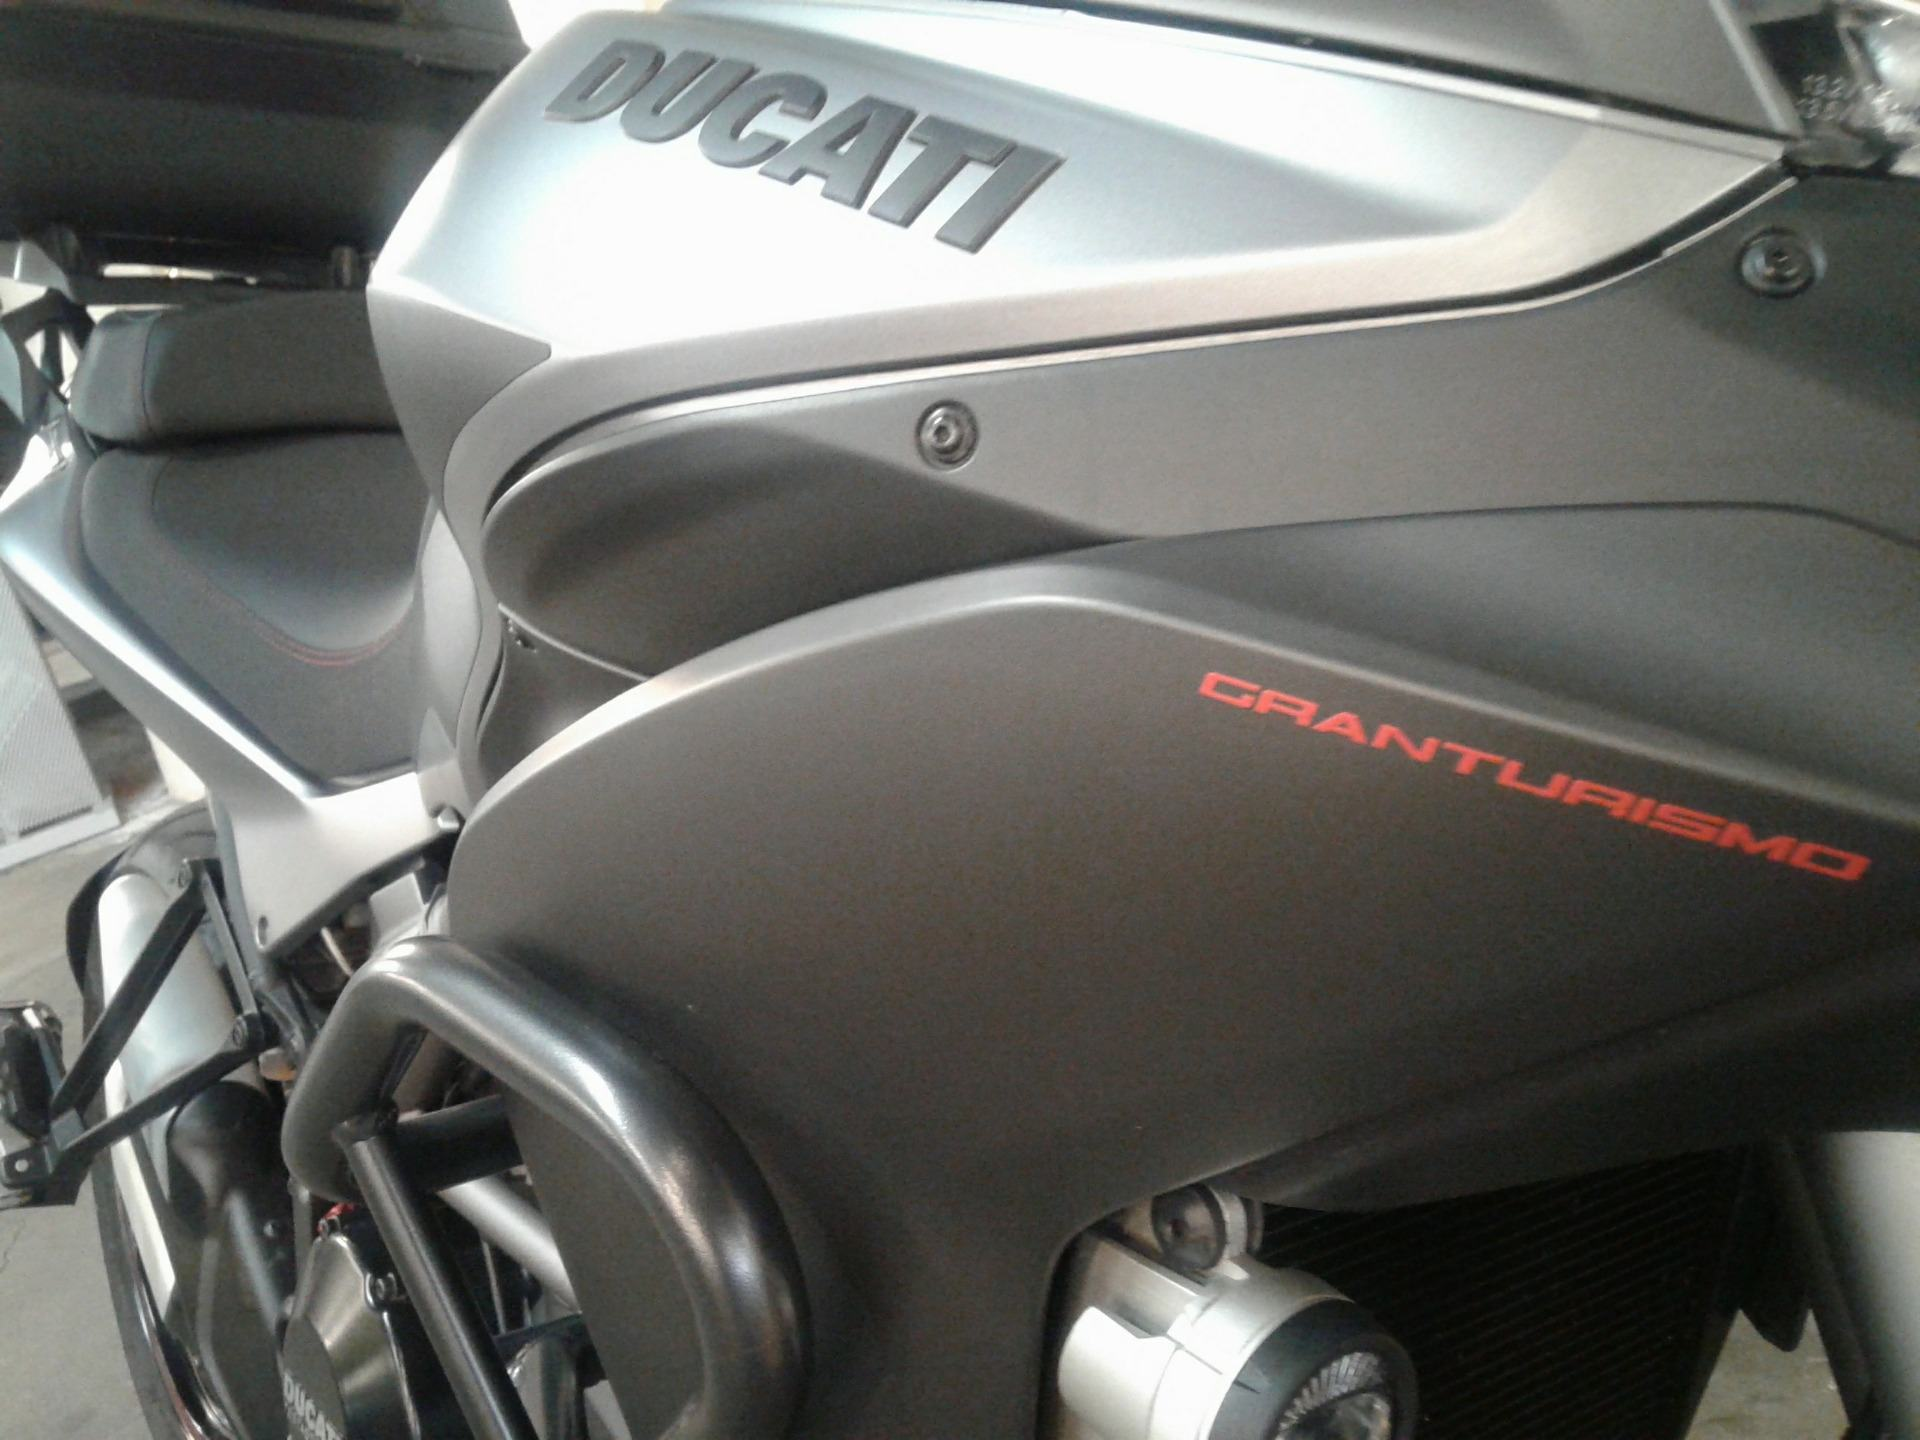 2014 Ducati Multistrada 1200 S Granturismo in Bakersfield, California - Photo 2